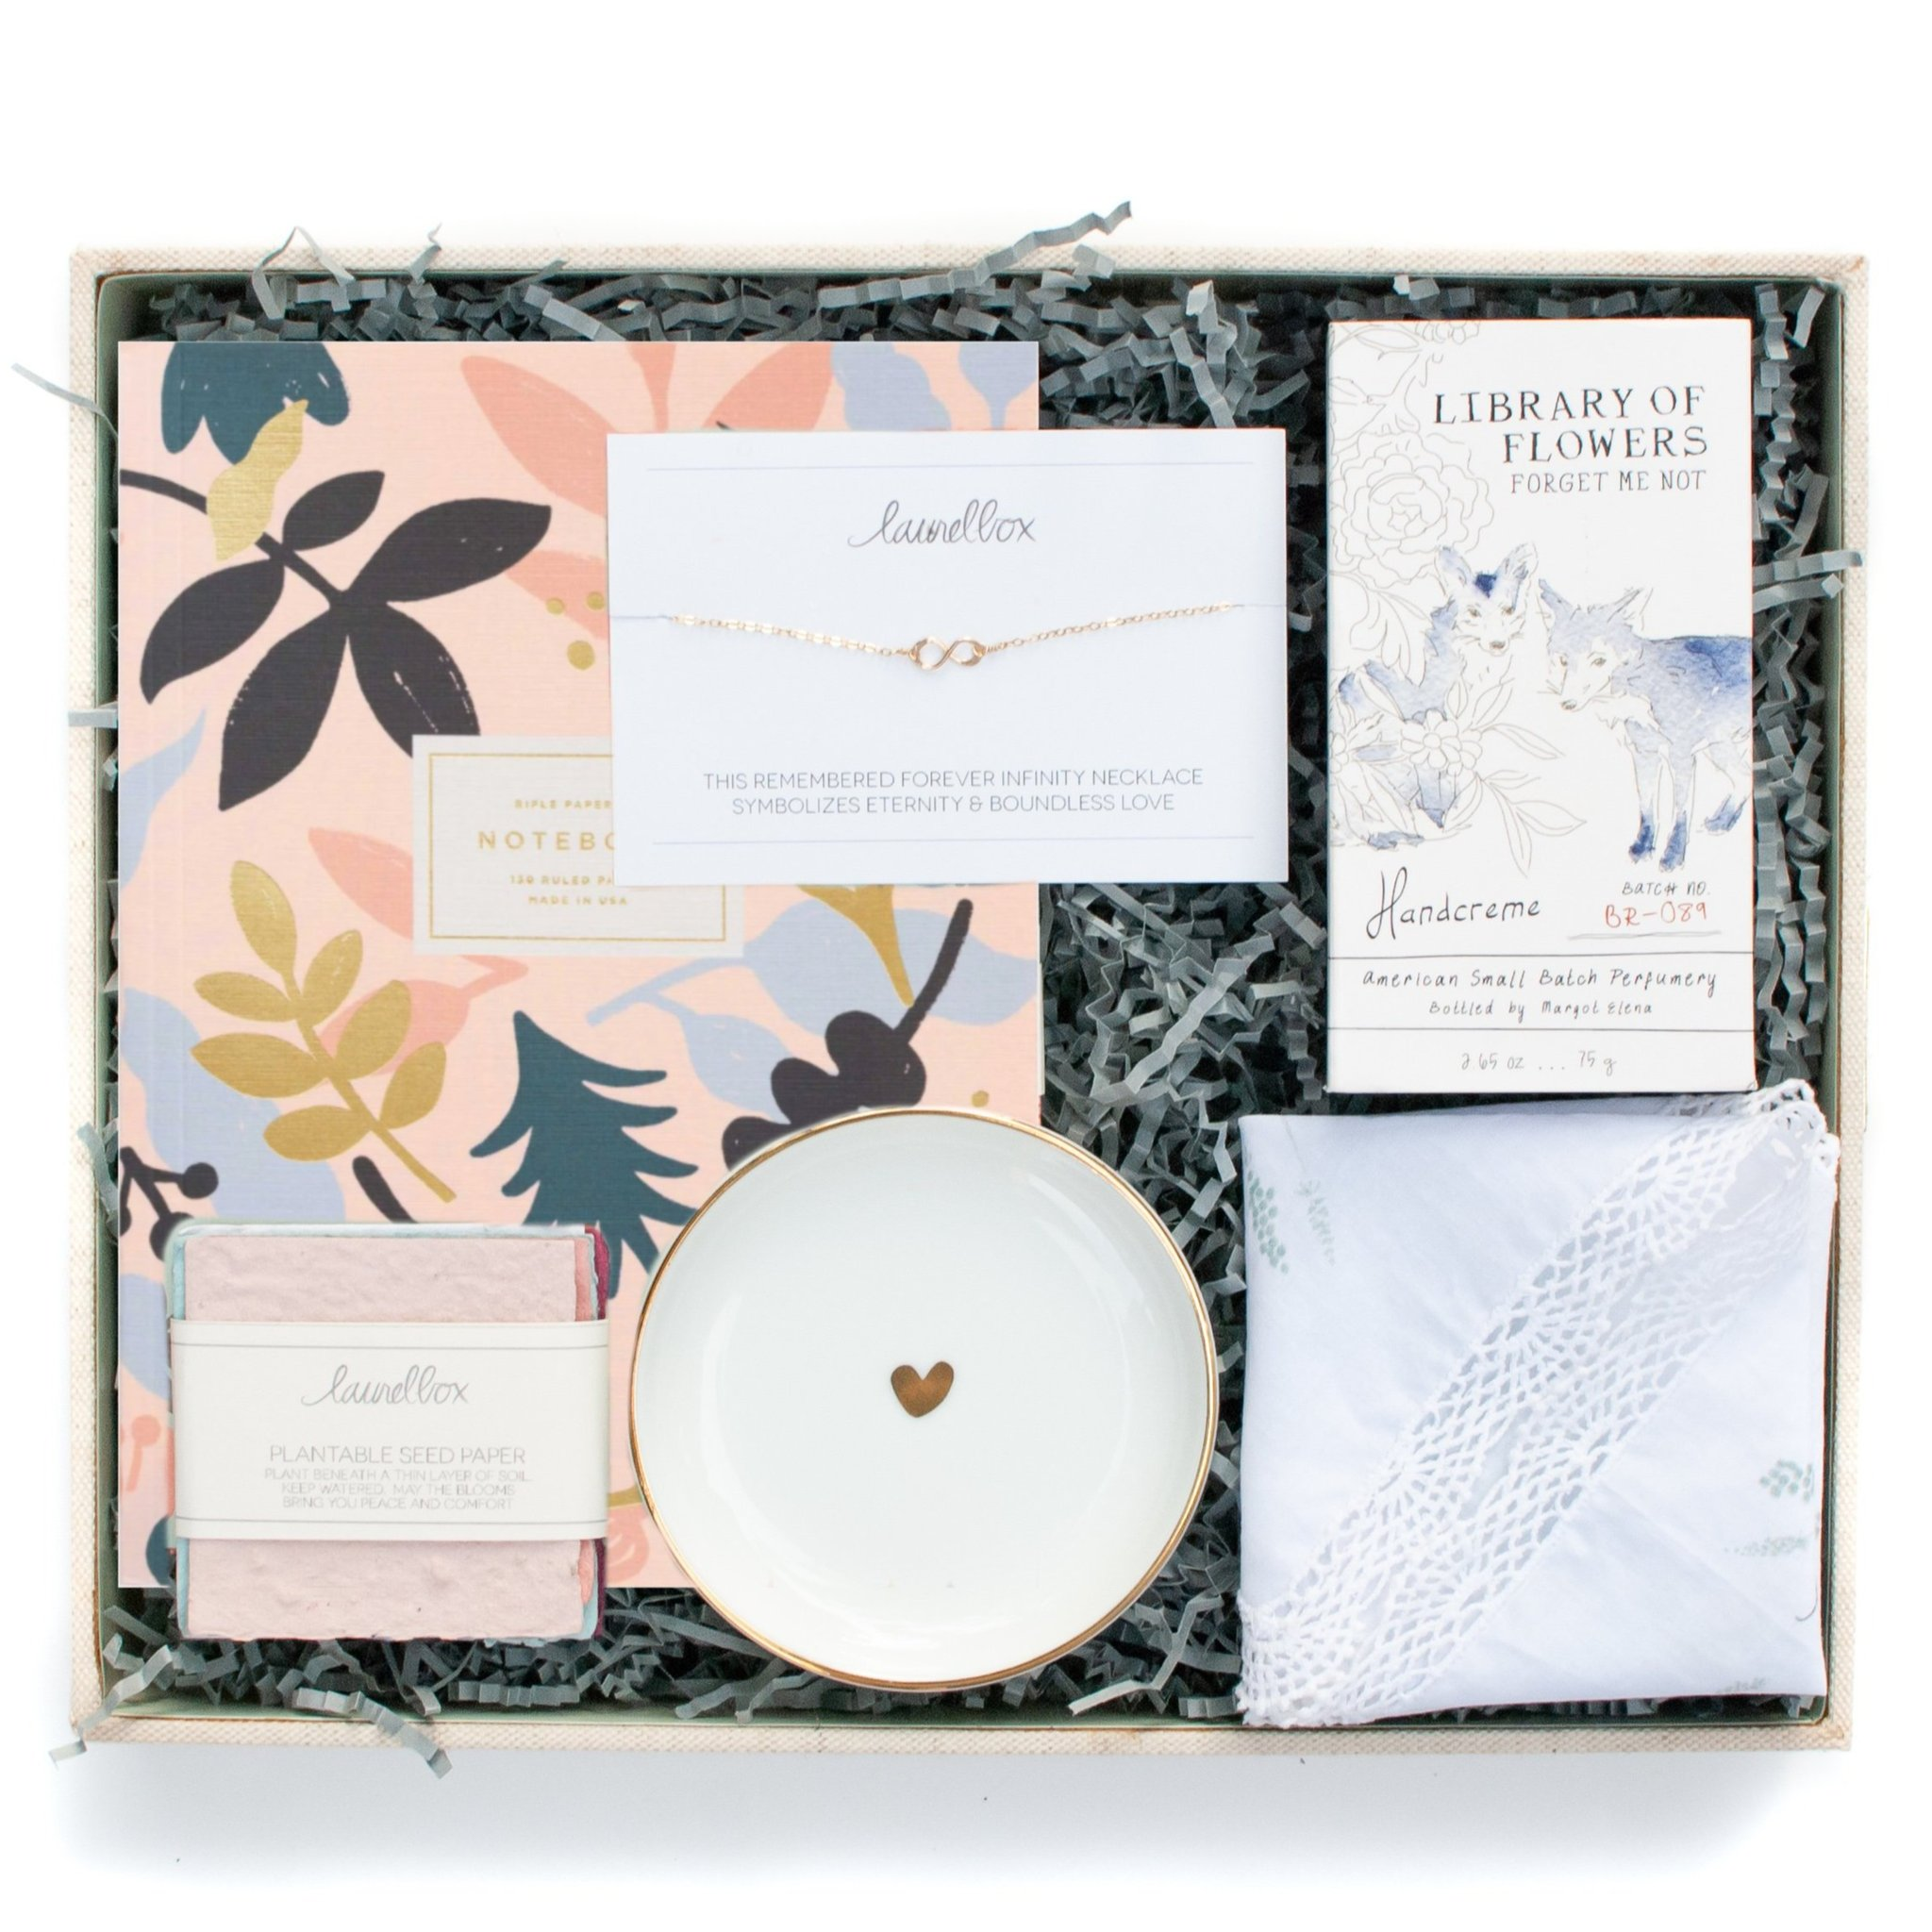 laurel gift - Gift Ideas for the Grieving Mom